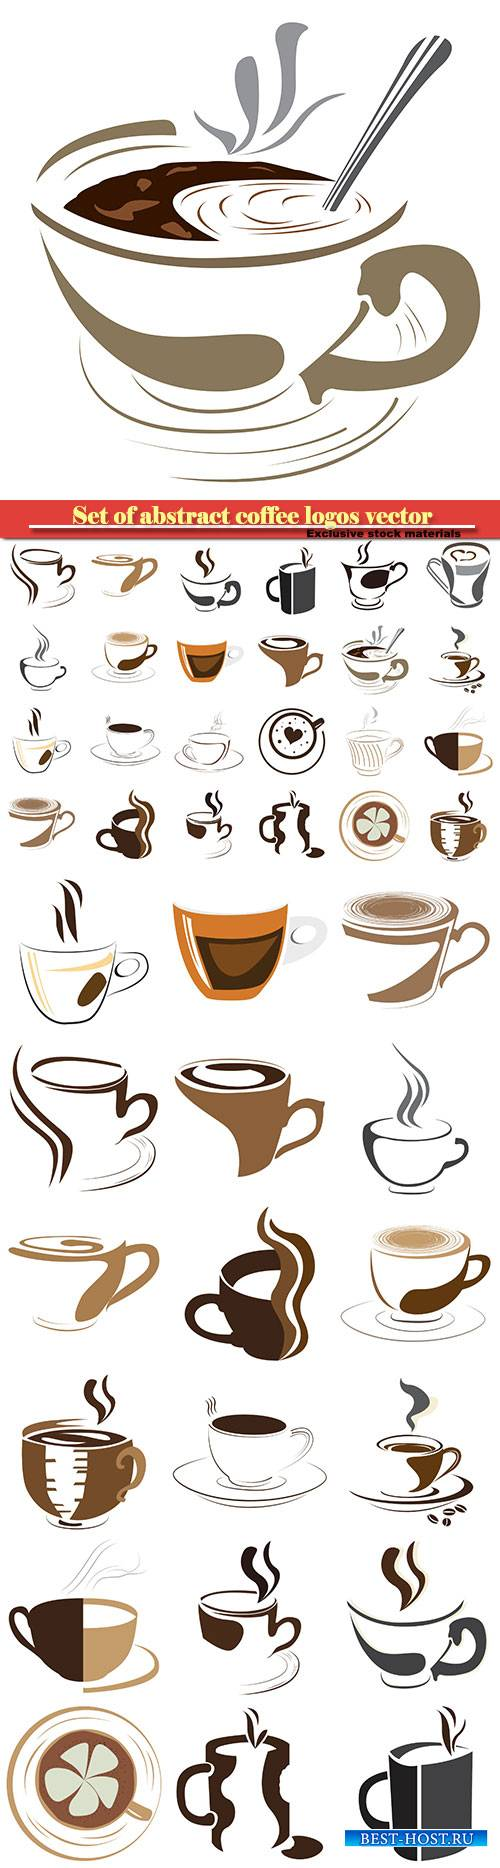 Set of abstract coffee logos vector illustration